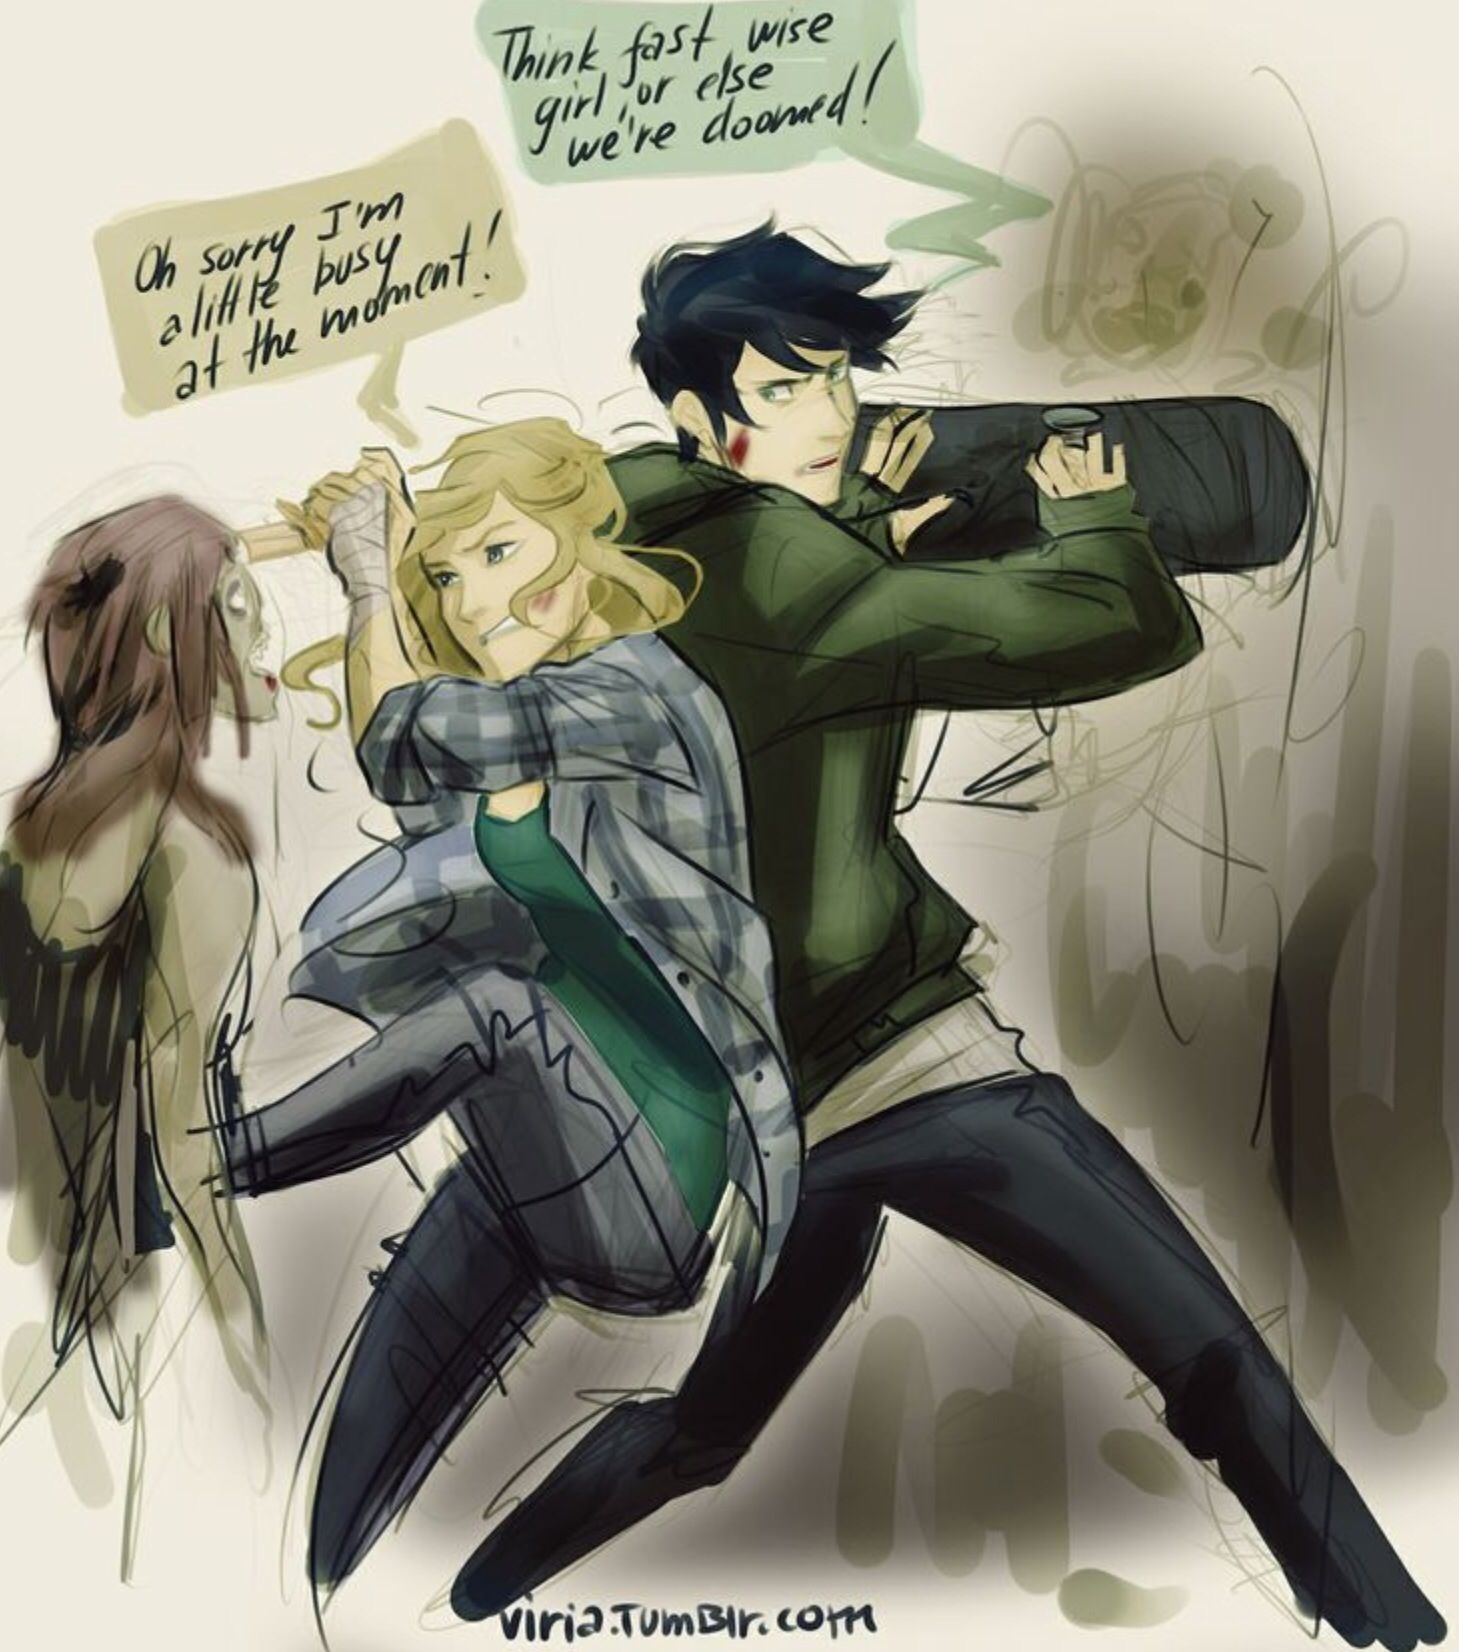 Fighting with a skateboard? Really percy?>>> Percy's DA MAN